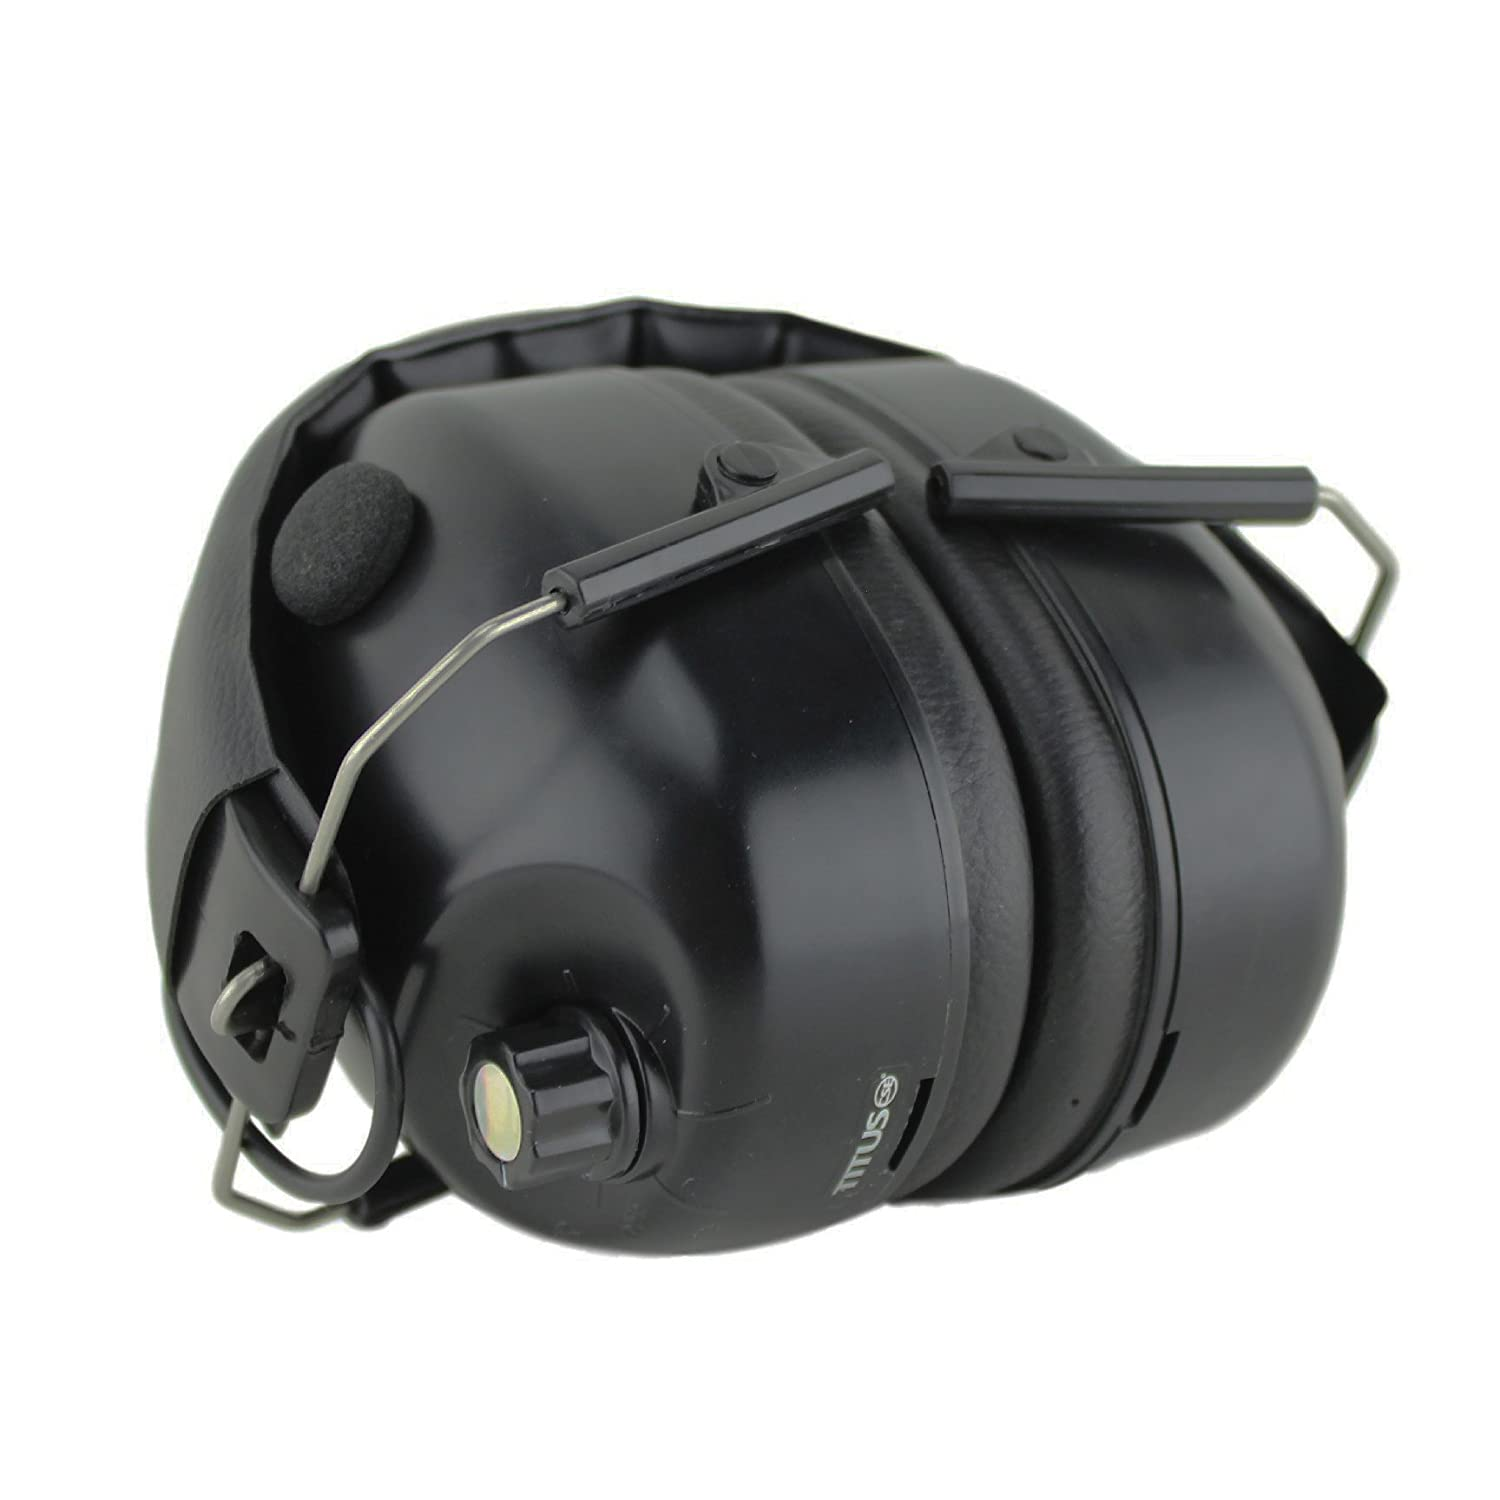 EG1 Hearing Protection Standard Low-Profile Electronic Noise Cancelling Safety Earmuffs Titus E-Series